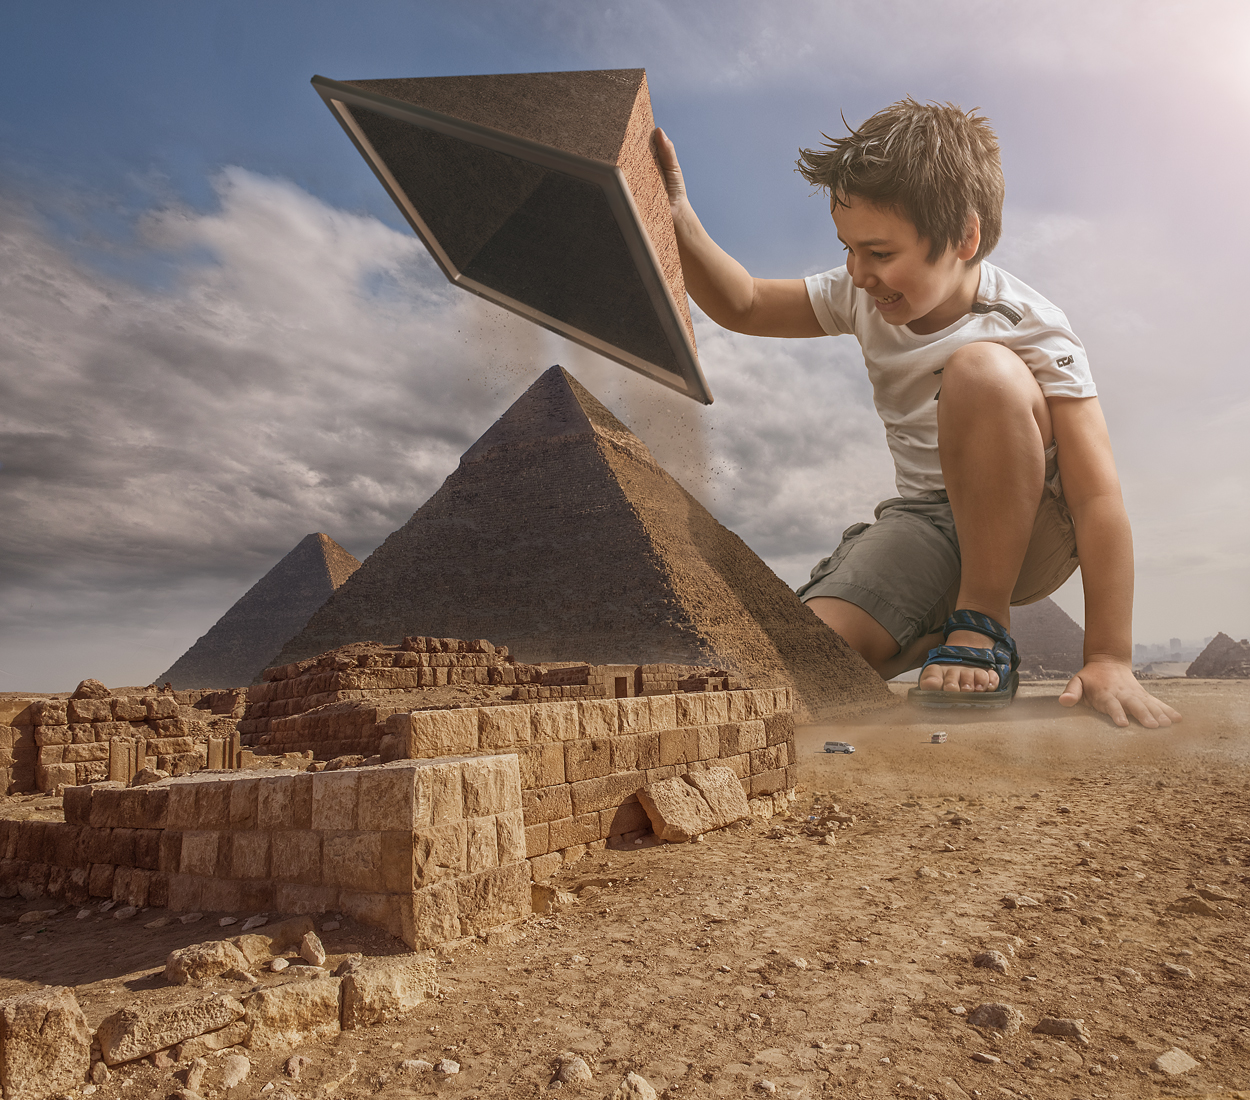 03-Pyramids-Adrian-Sommeling-Surreal-Photo-Manipulation-with-a-Son-s-Help-www-designstack-co